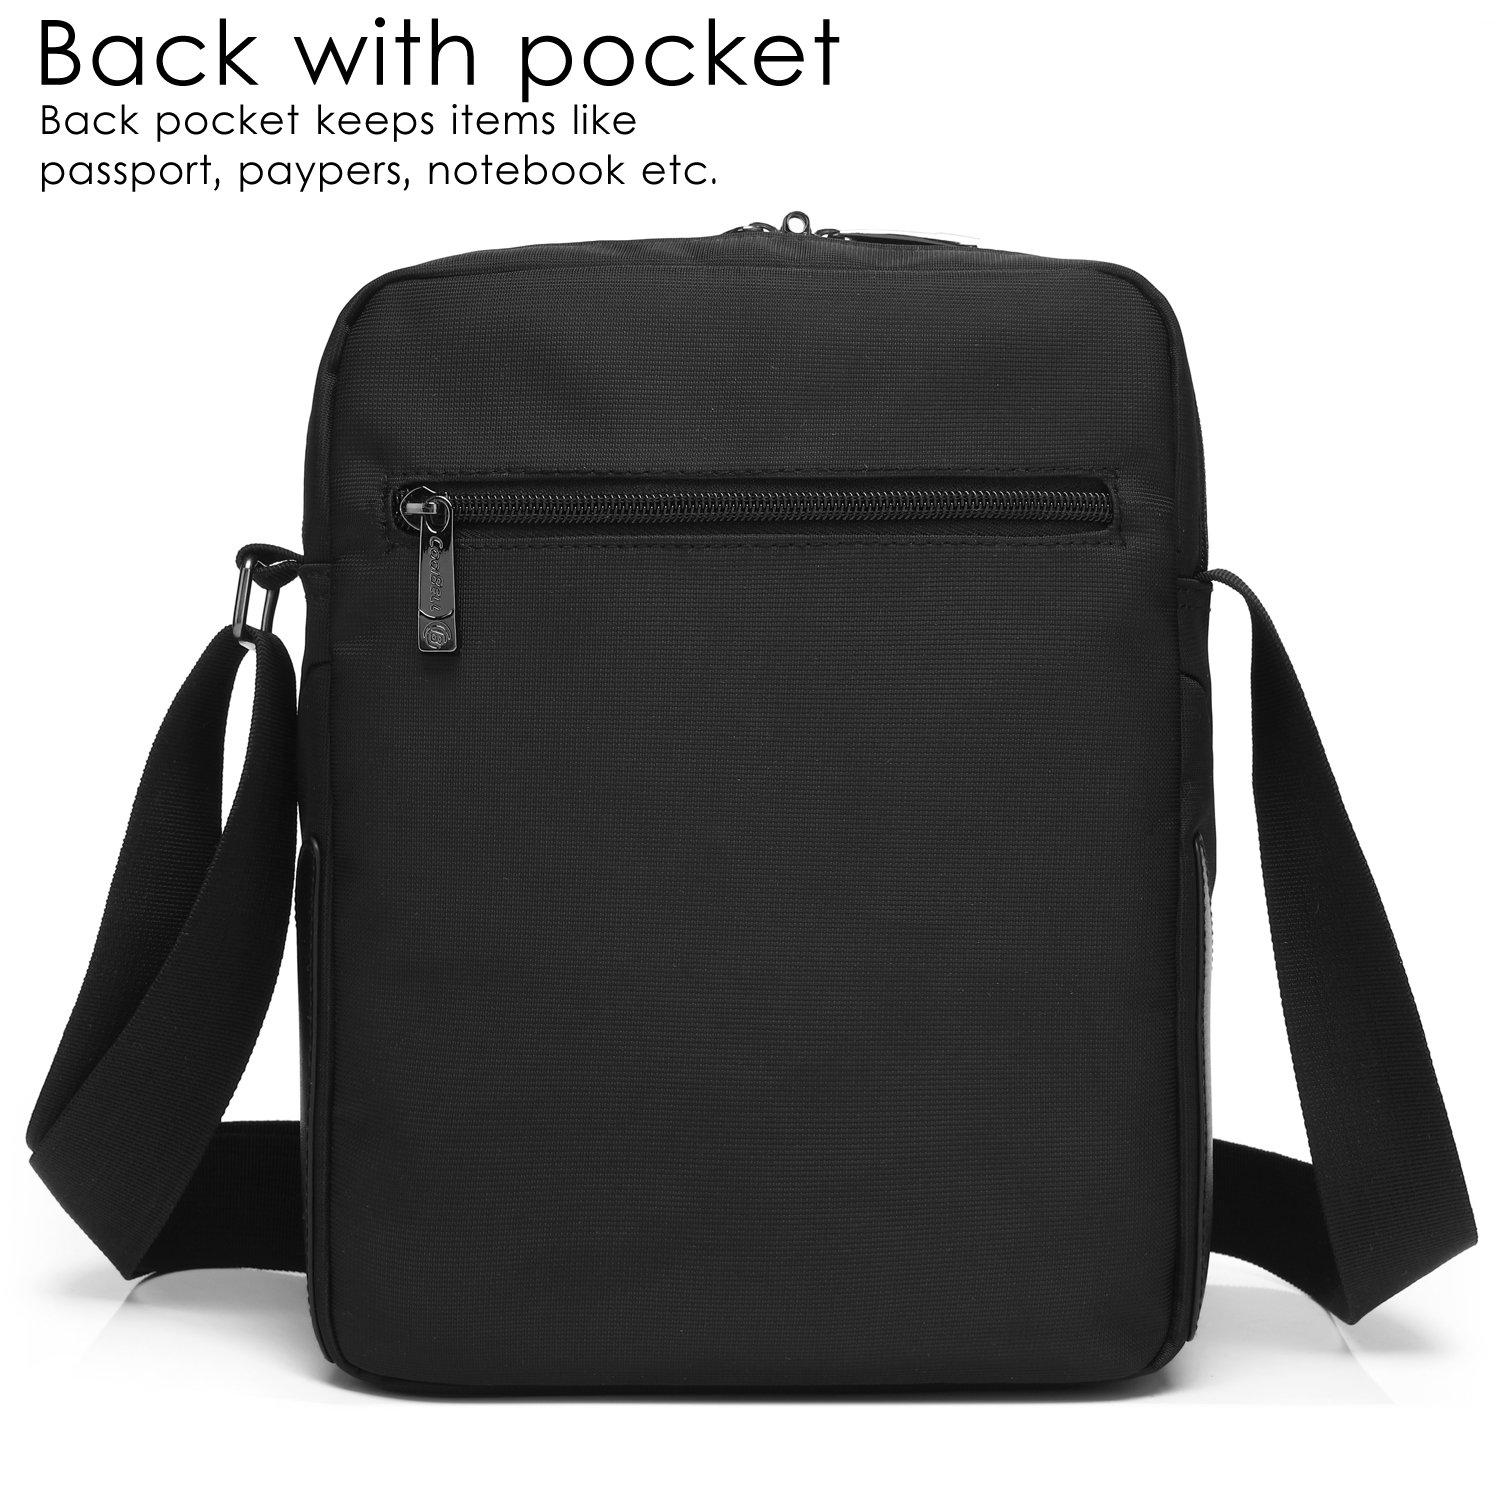 1a8c571b64 CoolBELL 10.6 inches Shoulder Bag Fabric Messenger Bag iPad Carrying case  Hand Bag Tablet Briefcase Waterproof Oxford Cloth Laptop Computer Shoulder  Bag for ...